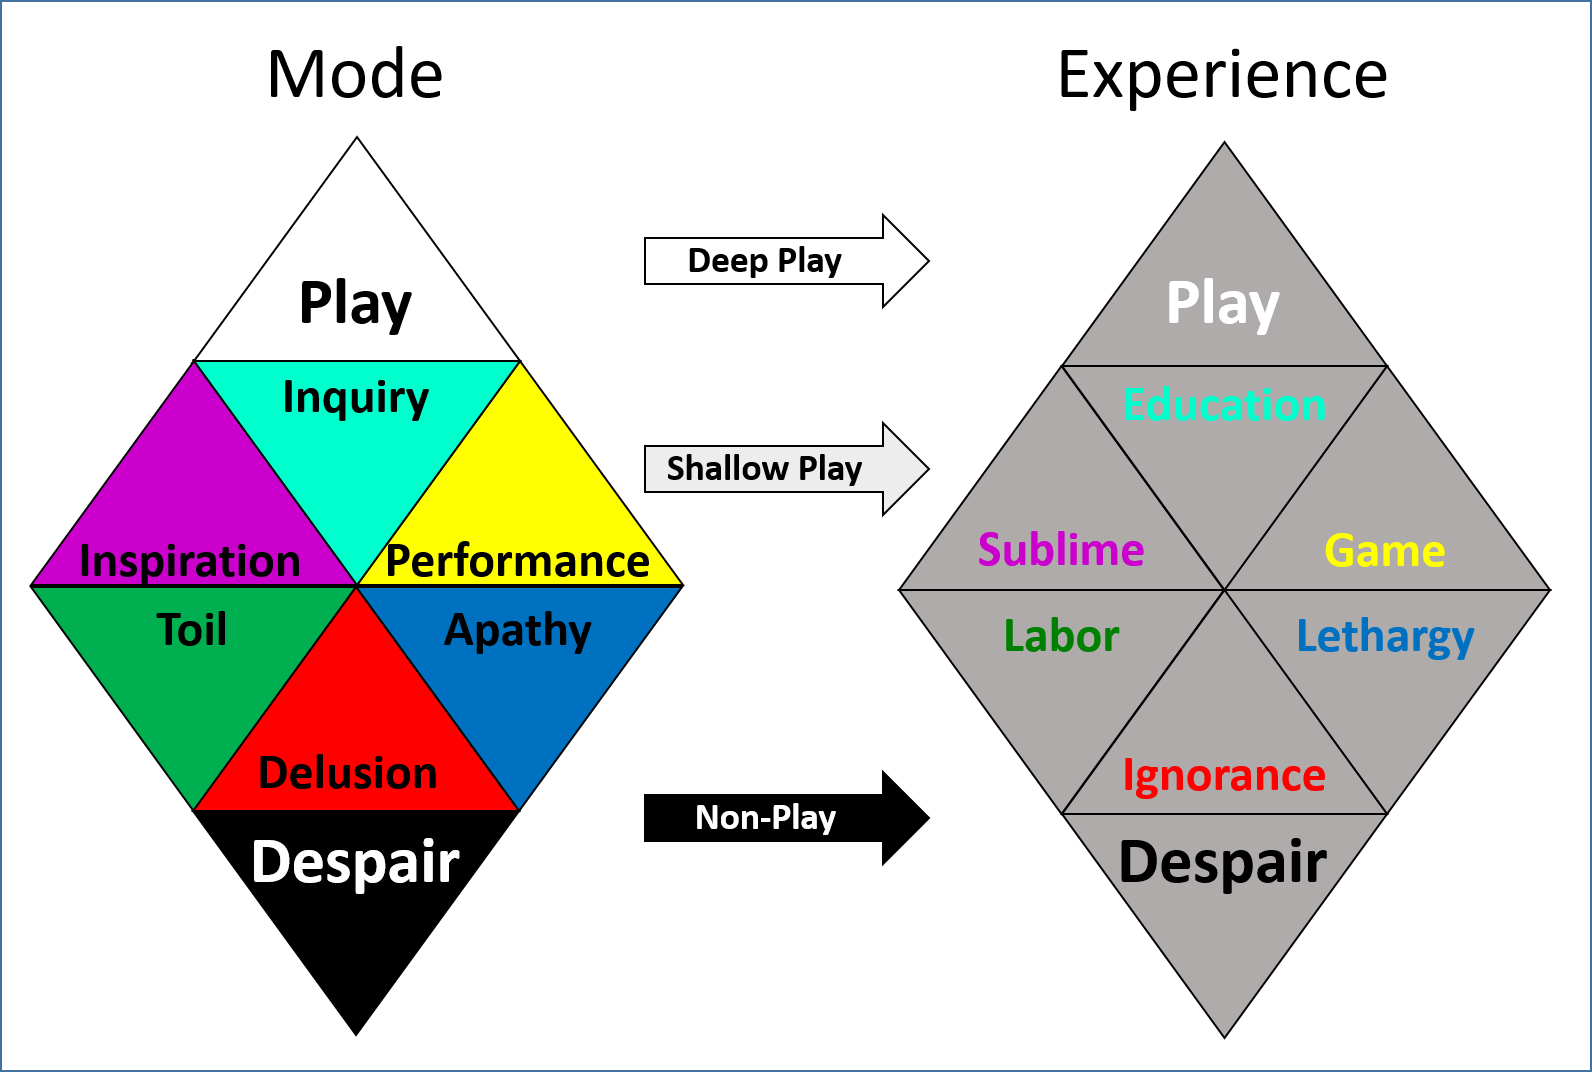 Figure 4: Perceptual Modes and their corresponding experience